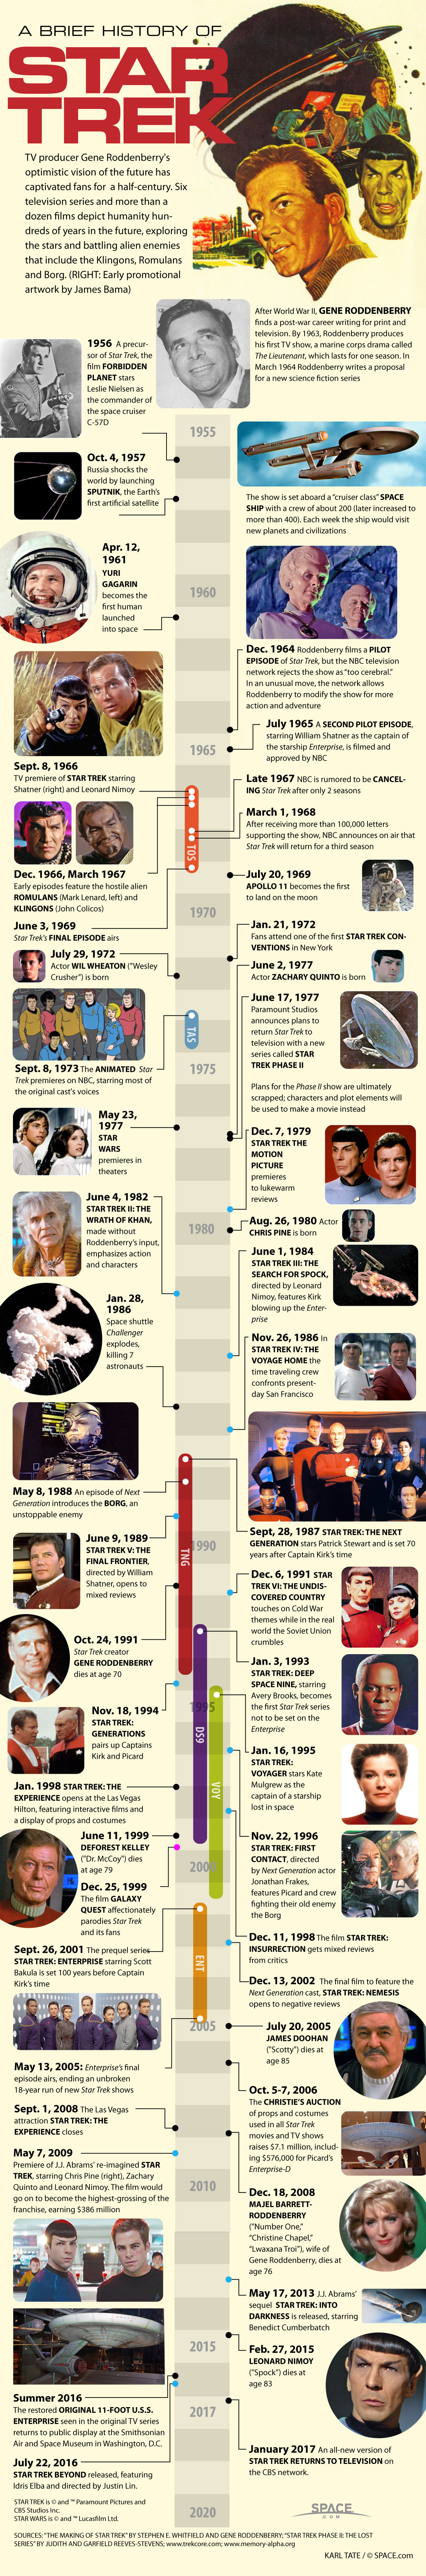 Infographic: Timeline of the Star Trek phenomenon on TV and in movies